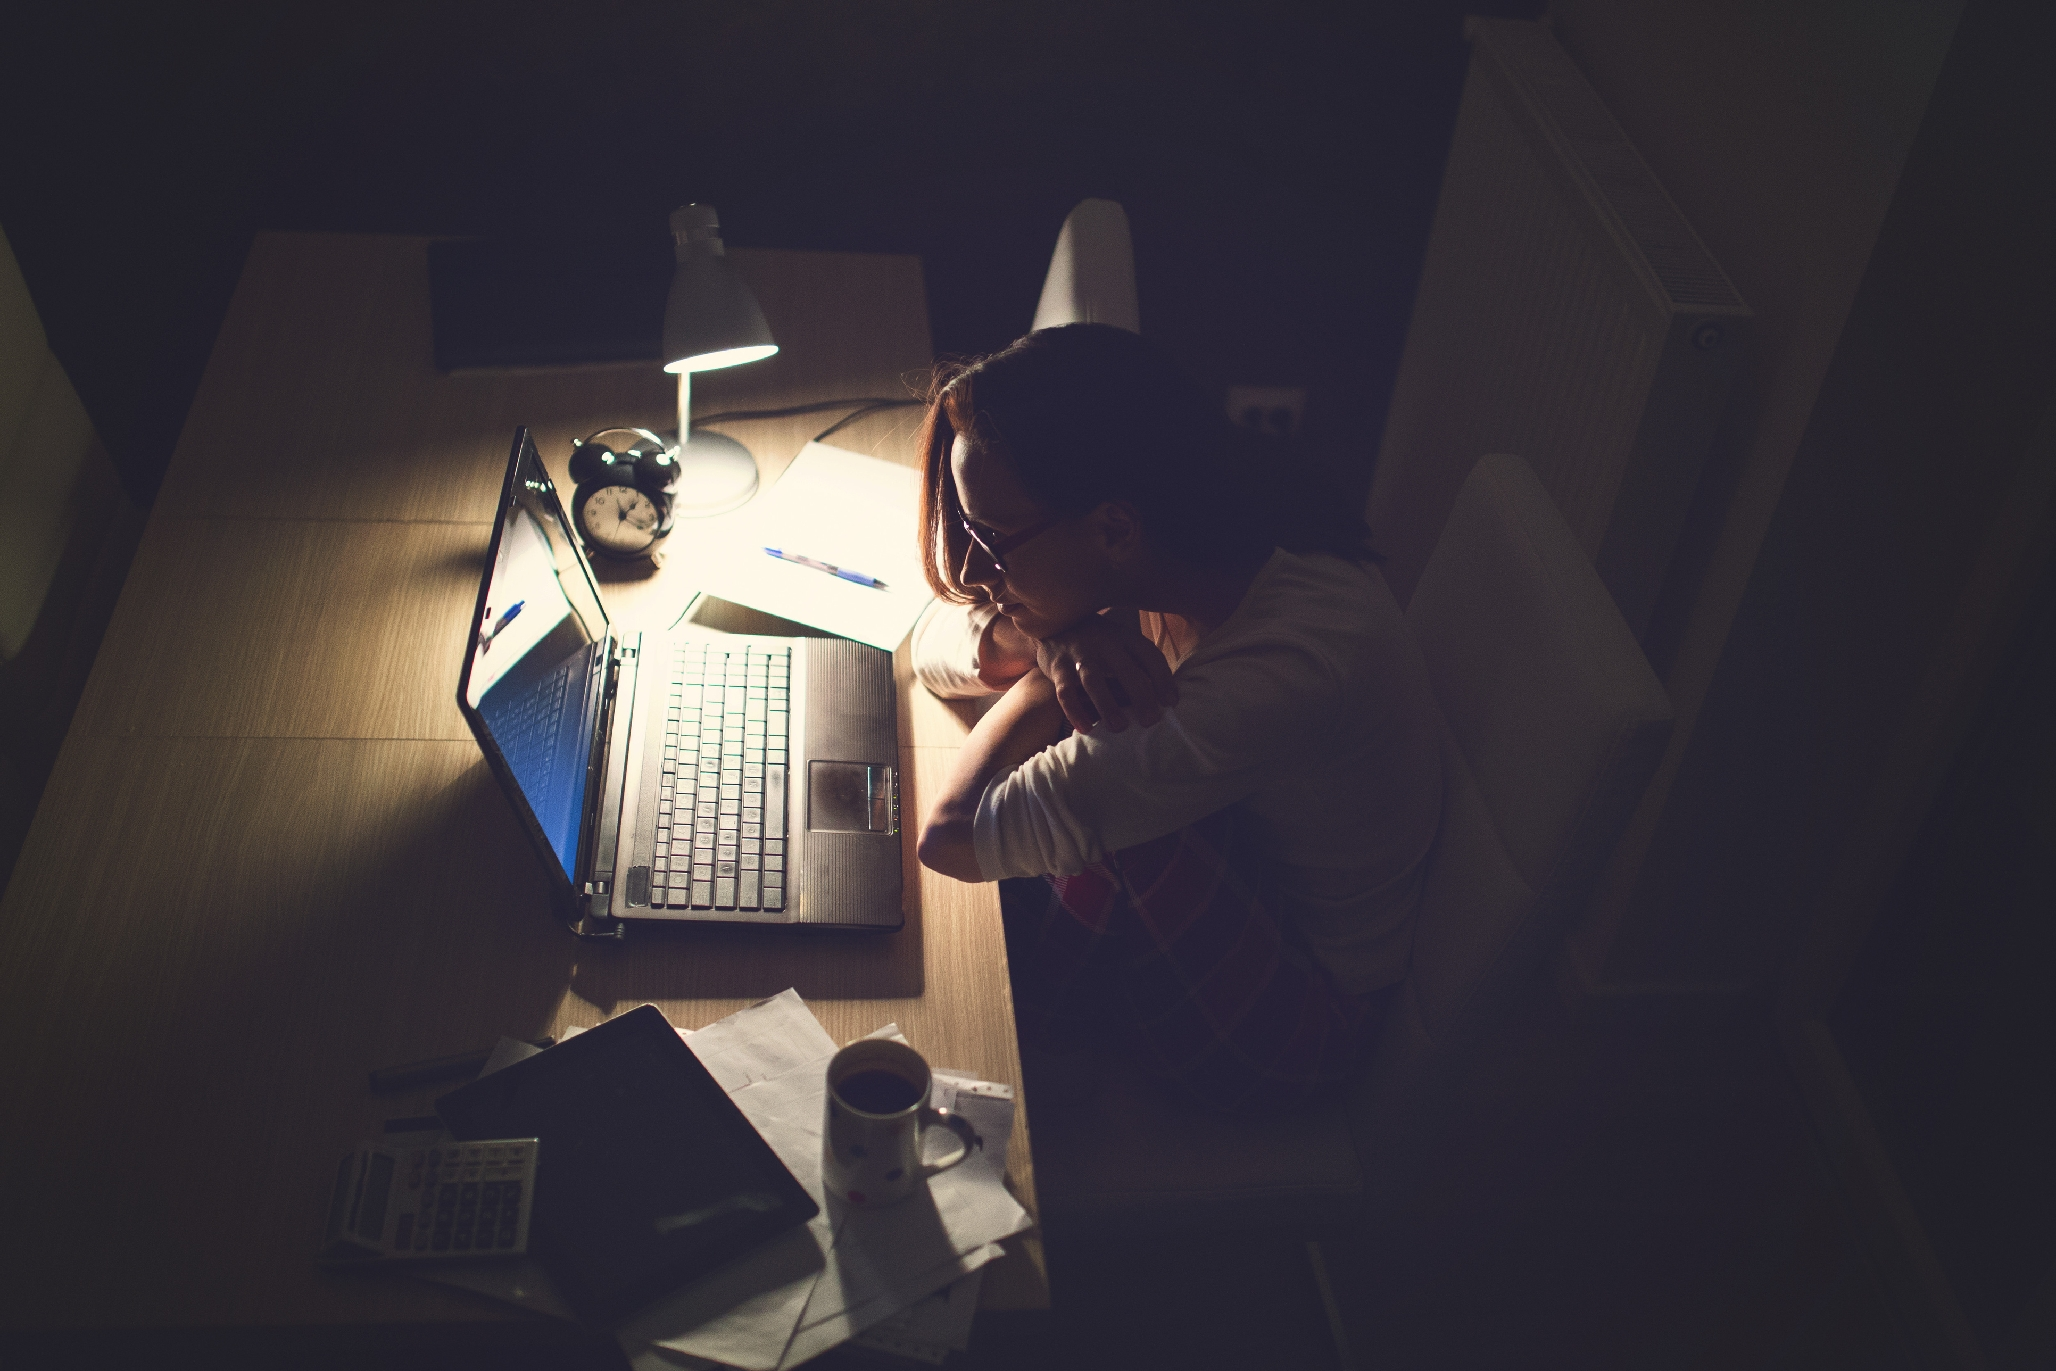 Prioritize and delegate tasks to avoid stress and burnout